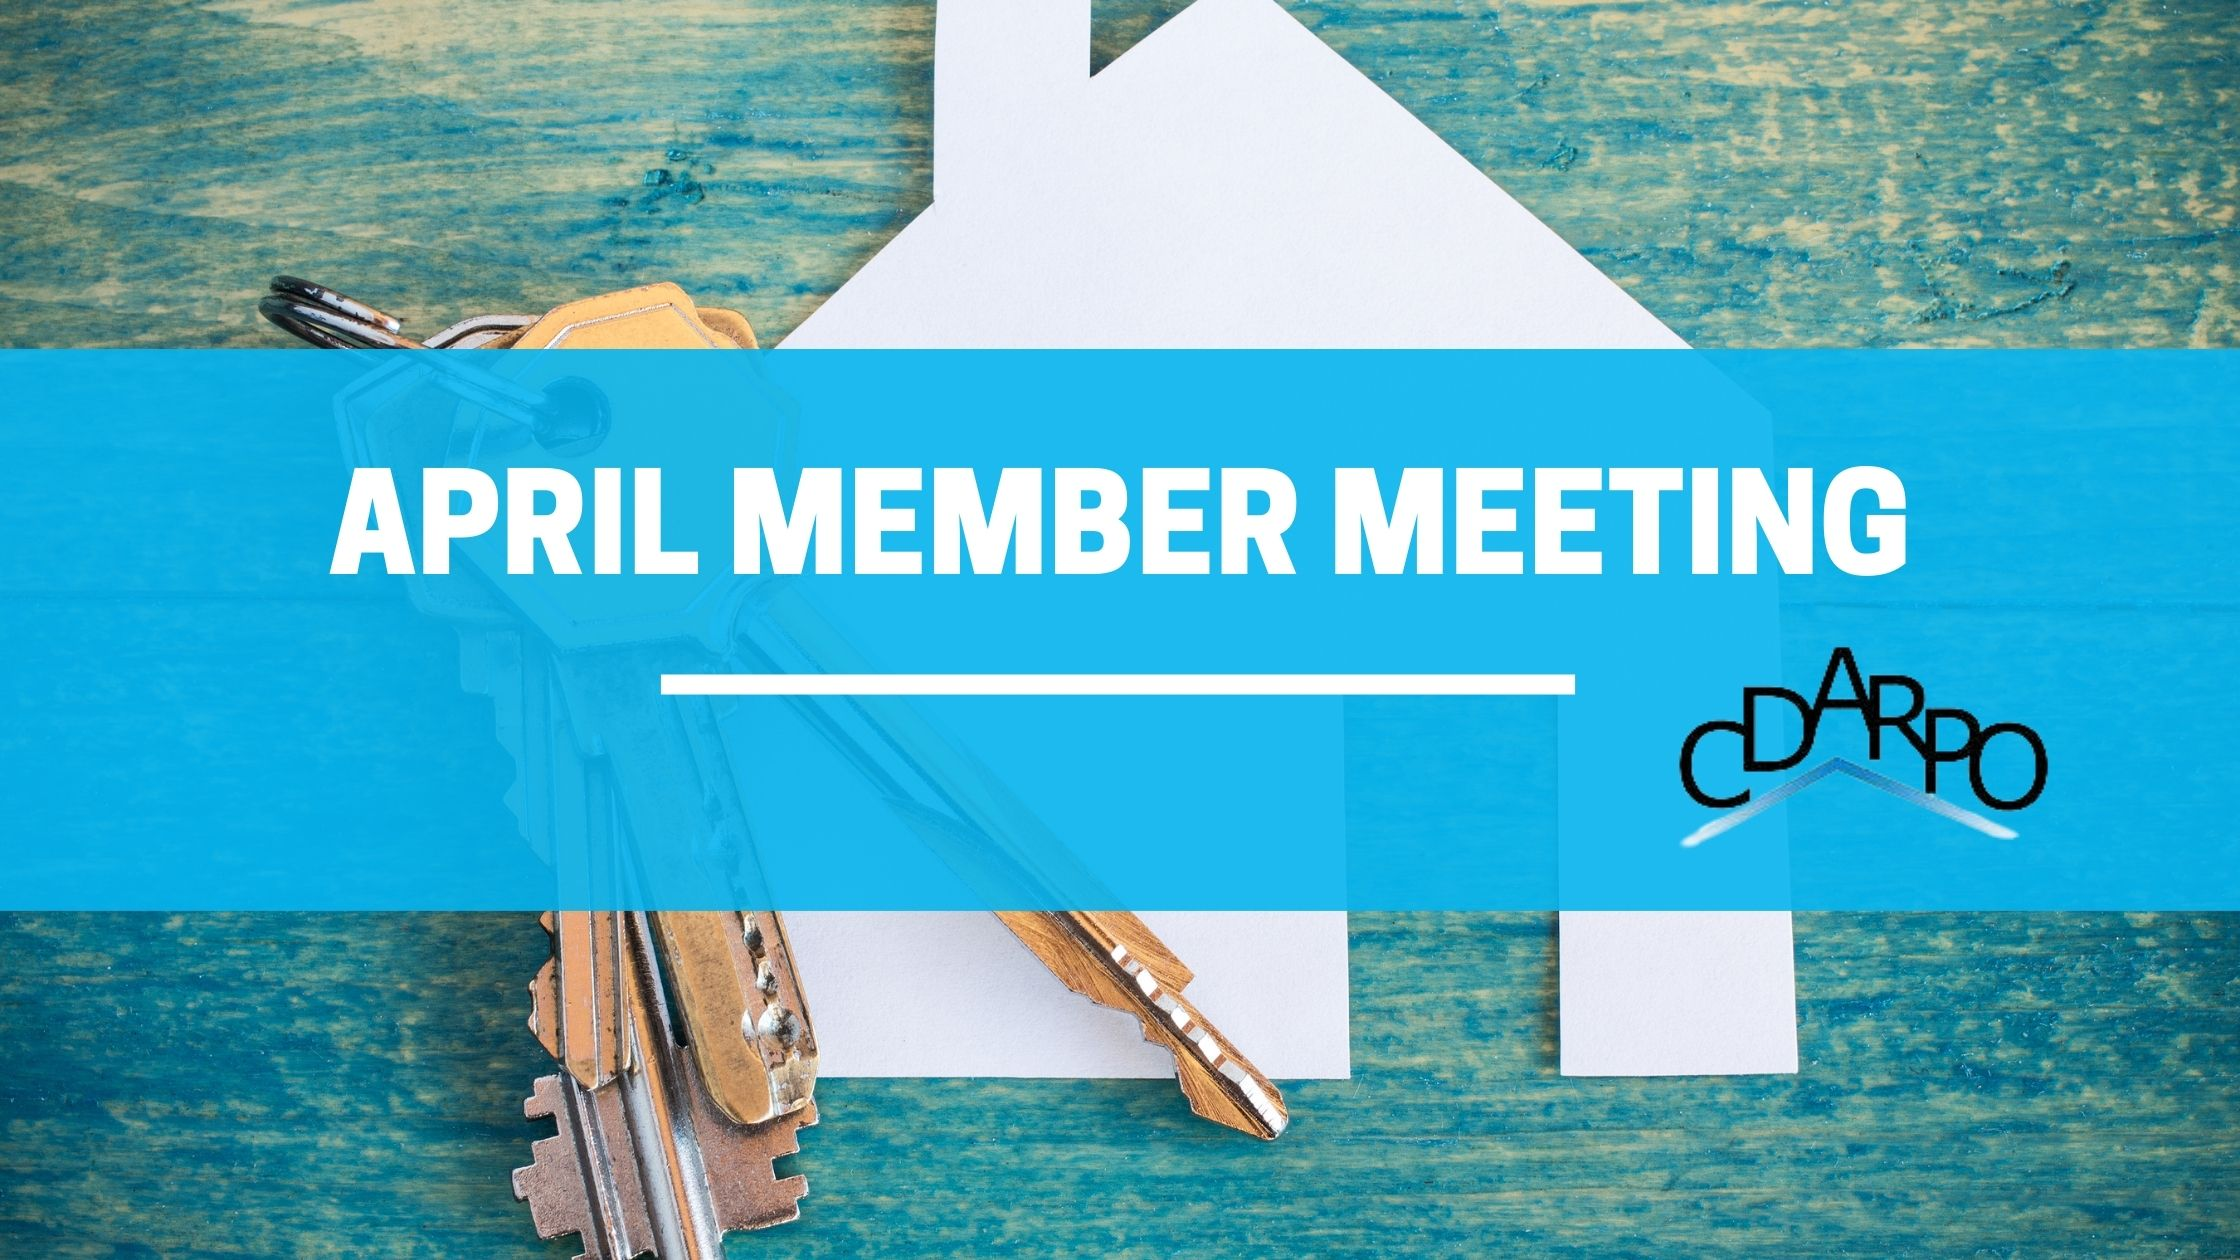 april member meeting cdarpo